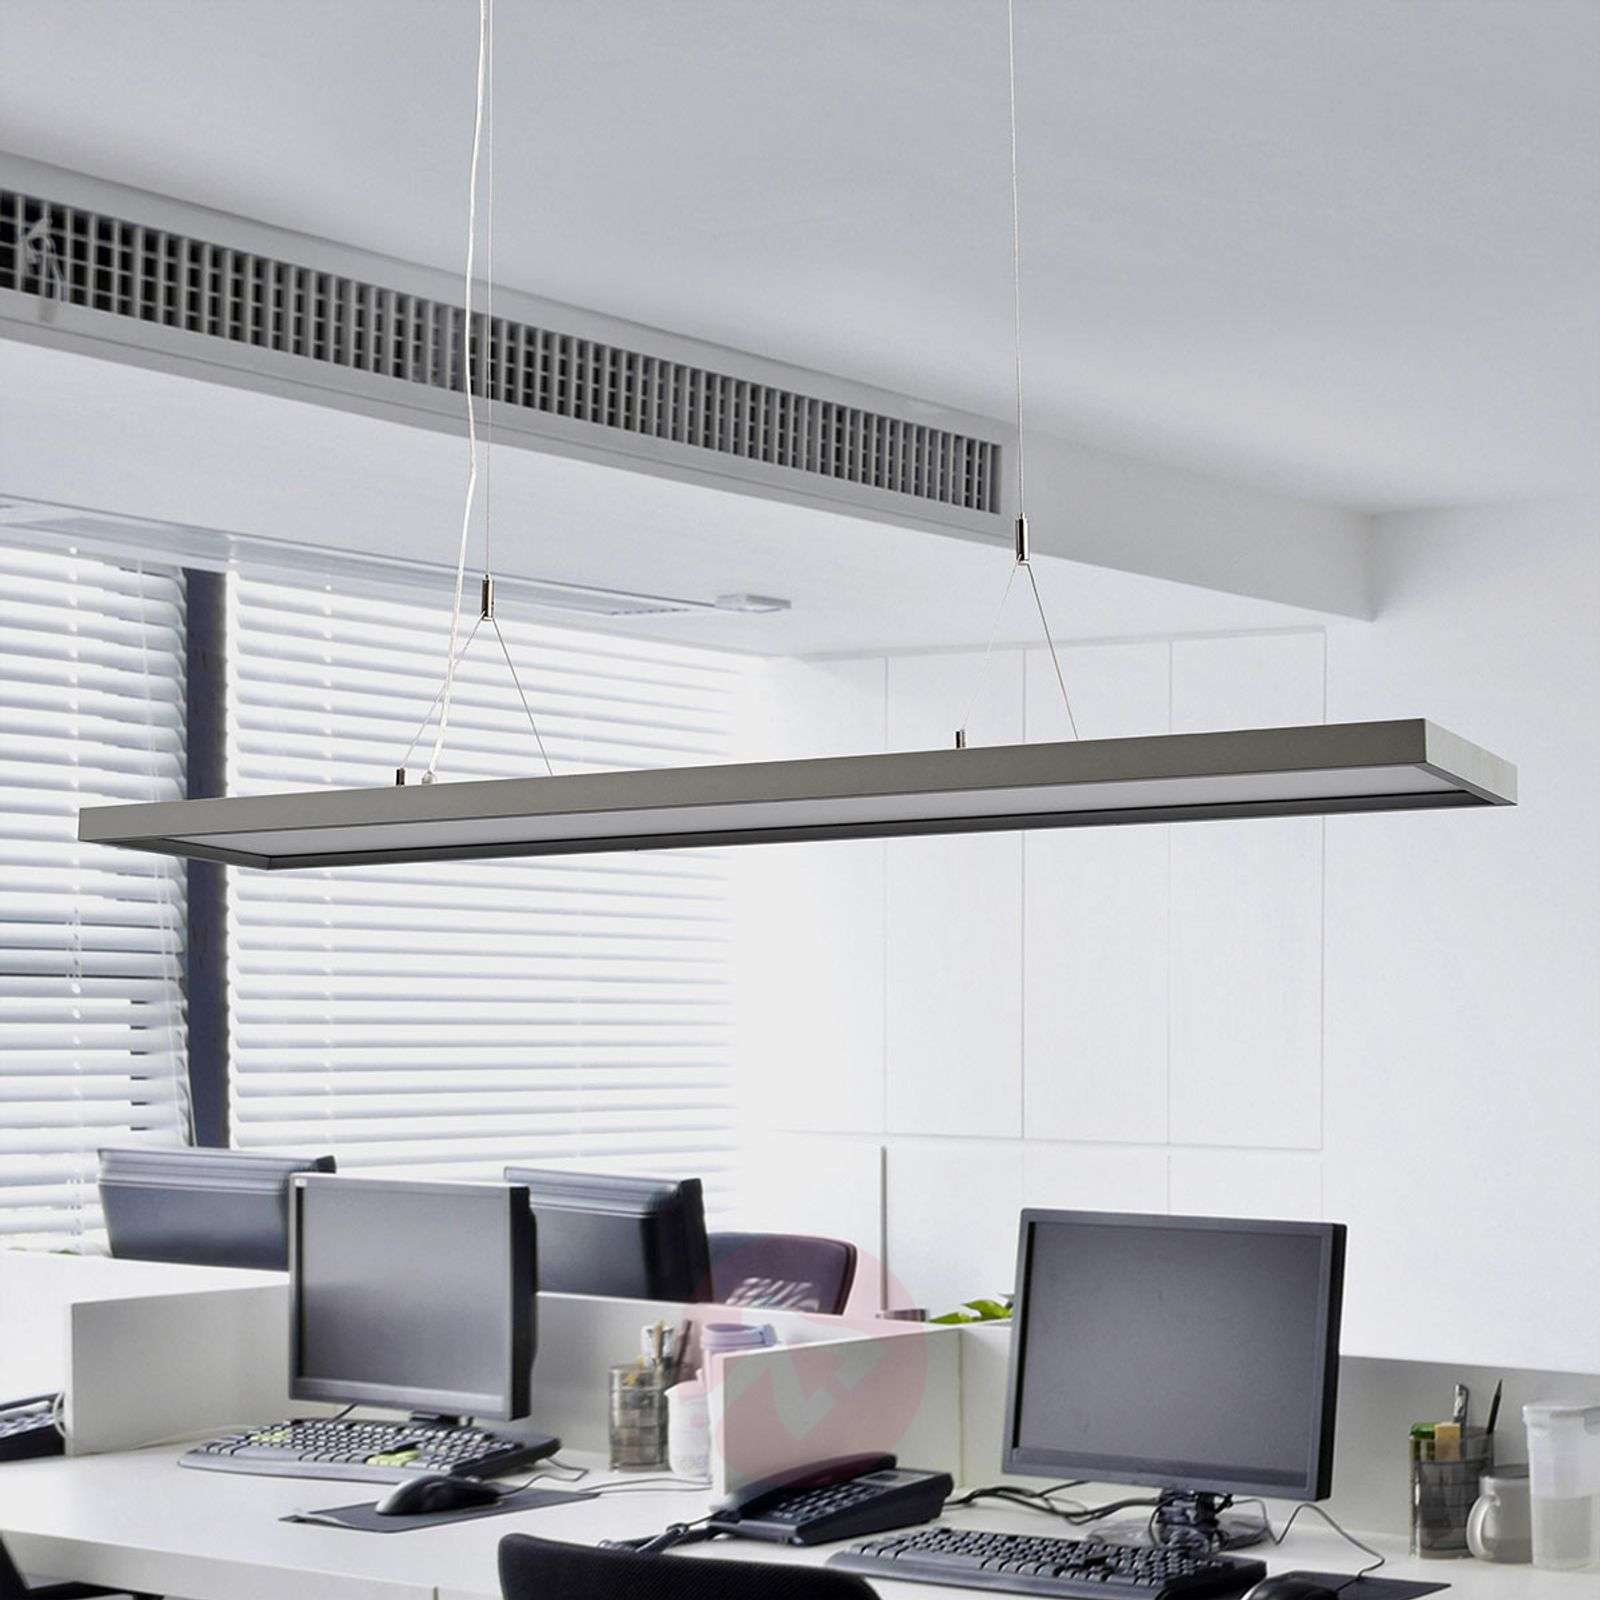 office hanging lights. Dimmable LED Office Hanging Light Divia-9968015-02 Lights G